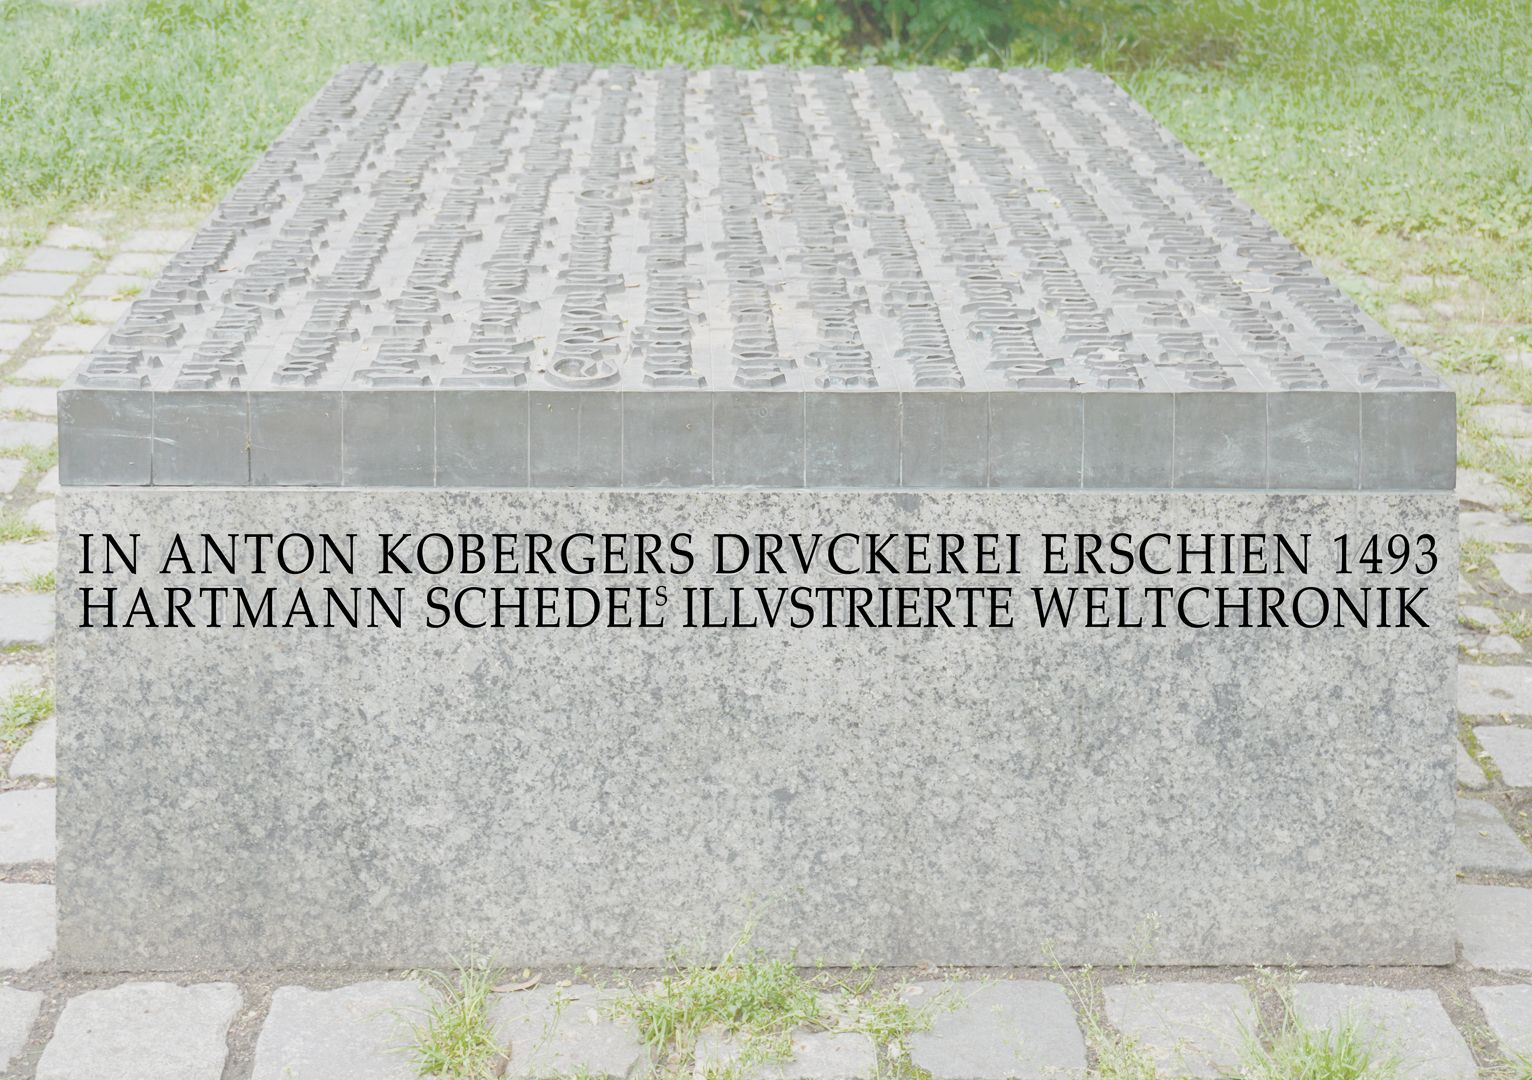 Anton Koberger / Memorial Stone Right side with inscription text (later photo editing)